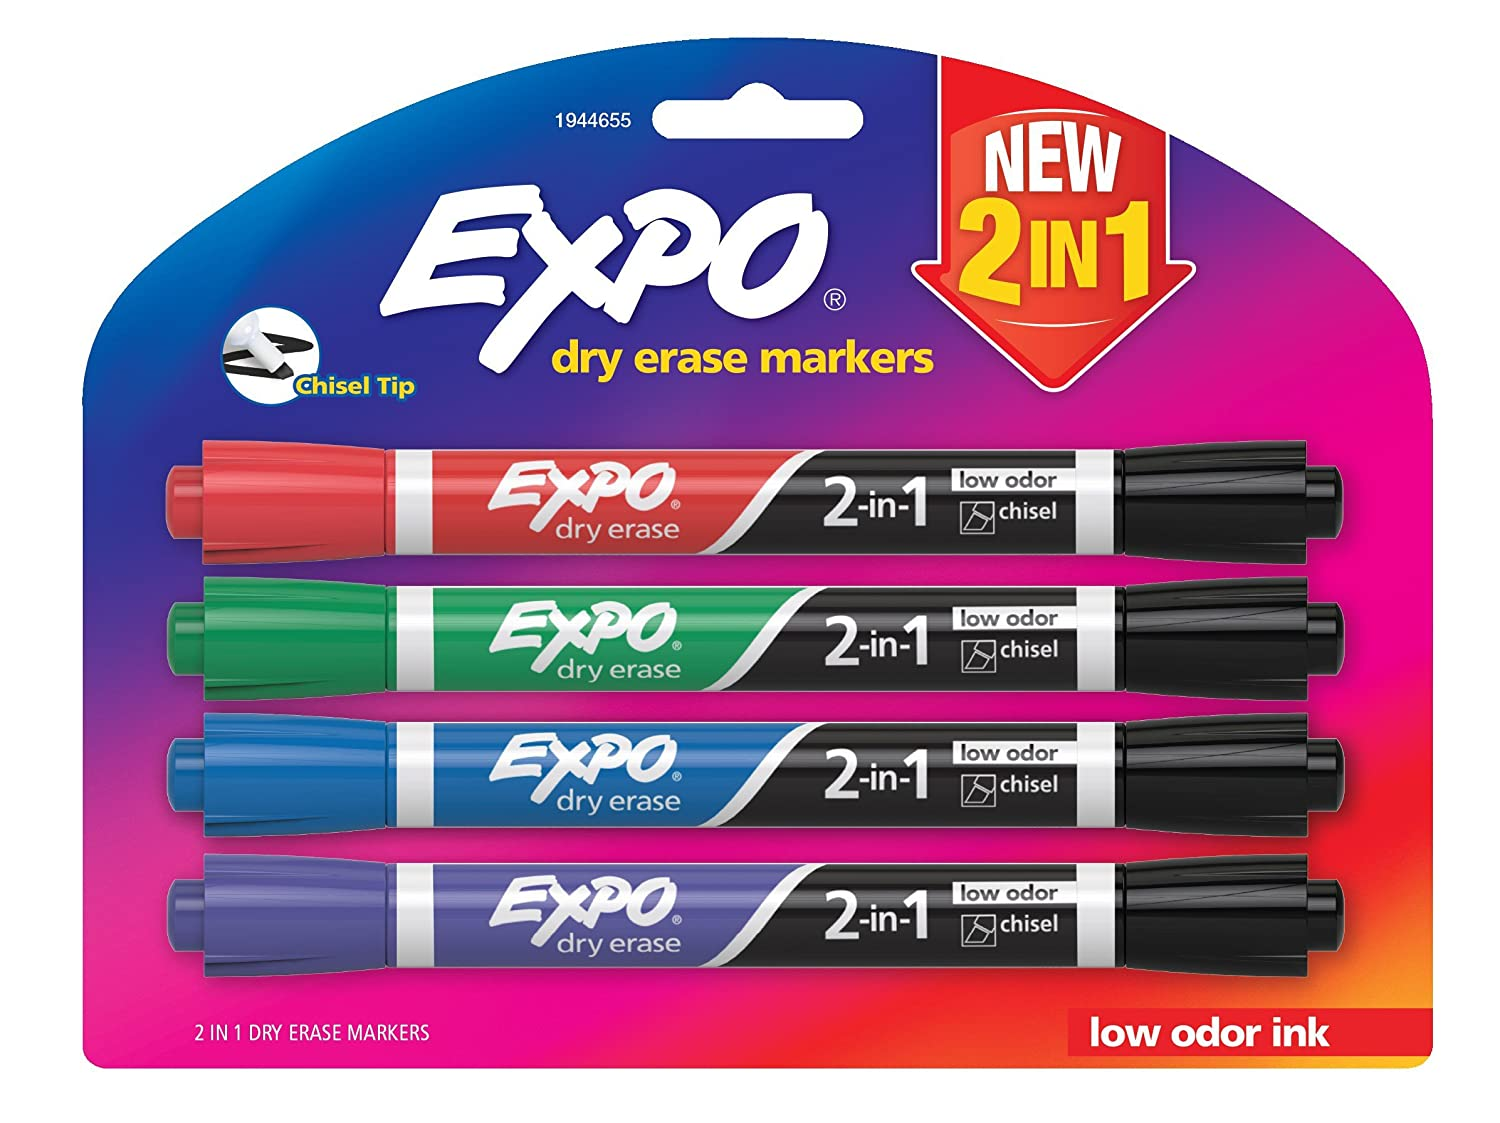 Expo Dry Erase 2-in-1 Markers, Chisel Tip, Assorted, 4-Pack (1944655) Newell Rubbermaid Office